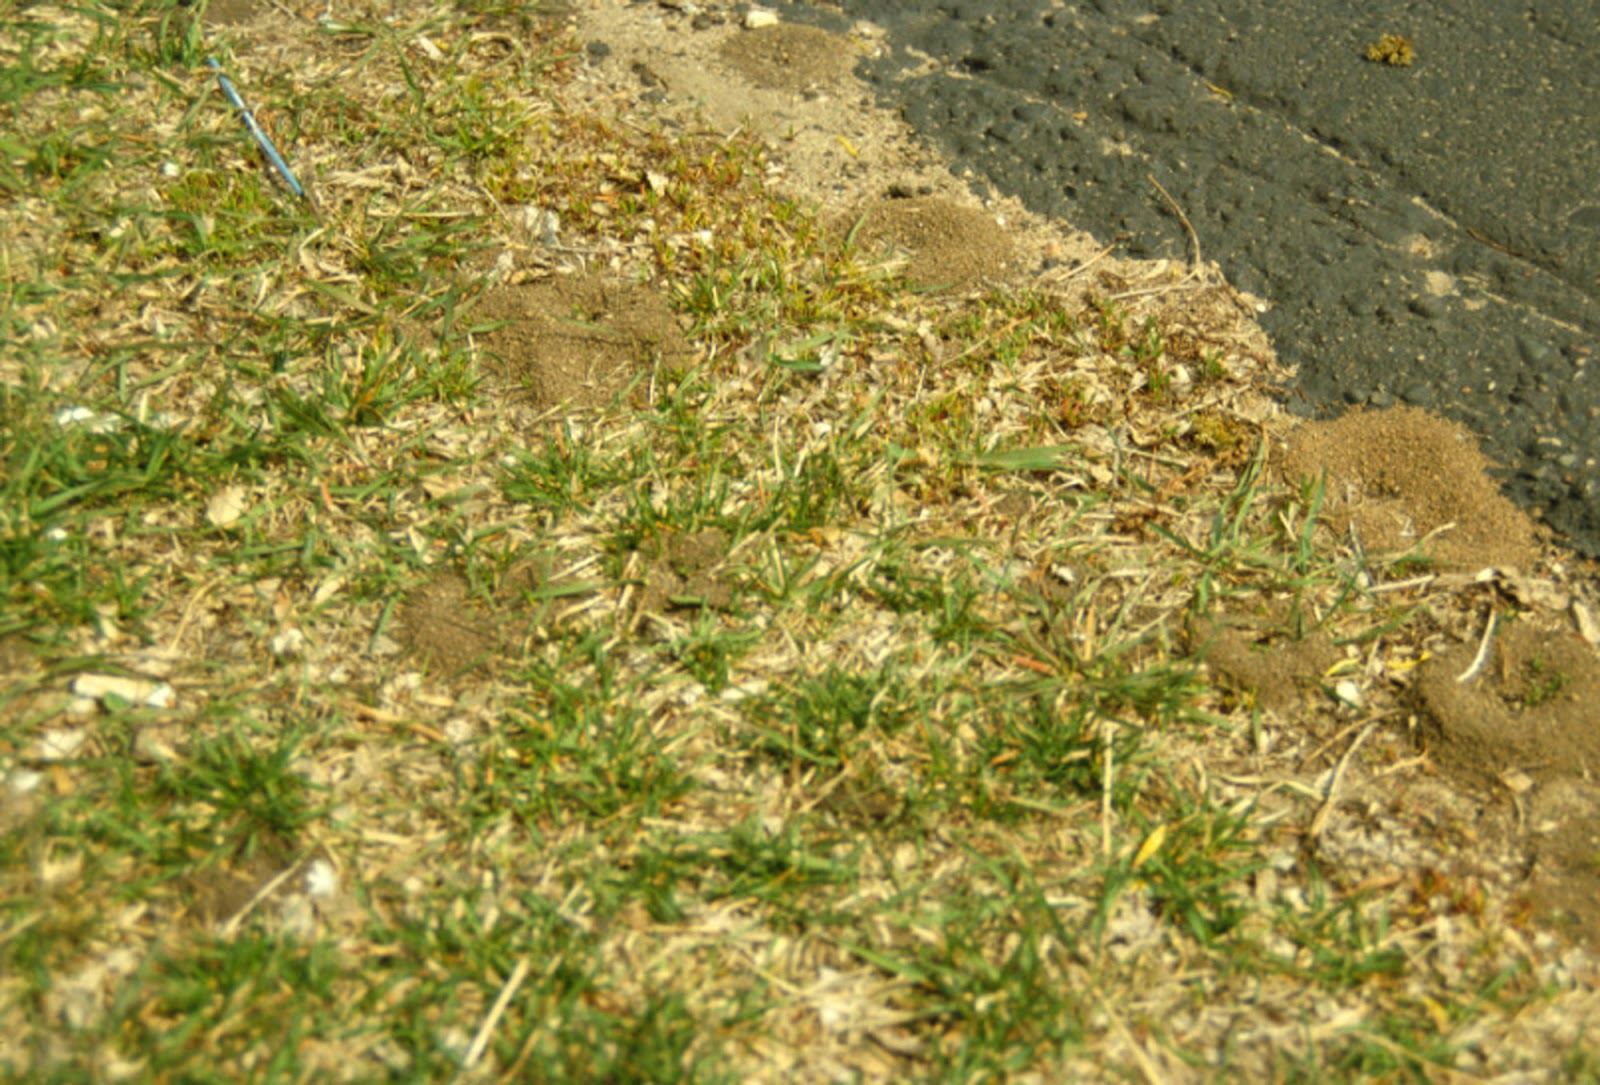 Ants in turf yard and garden news university of minnesota cornfield ant nests they take advantage of sparse thinning grass photo jeffrey hahn umn extension ccuart Choice Image